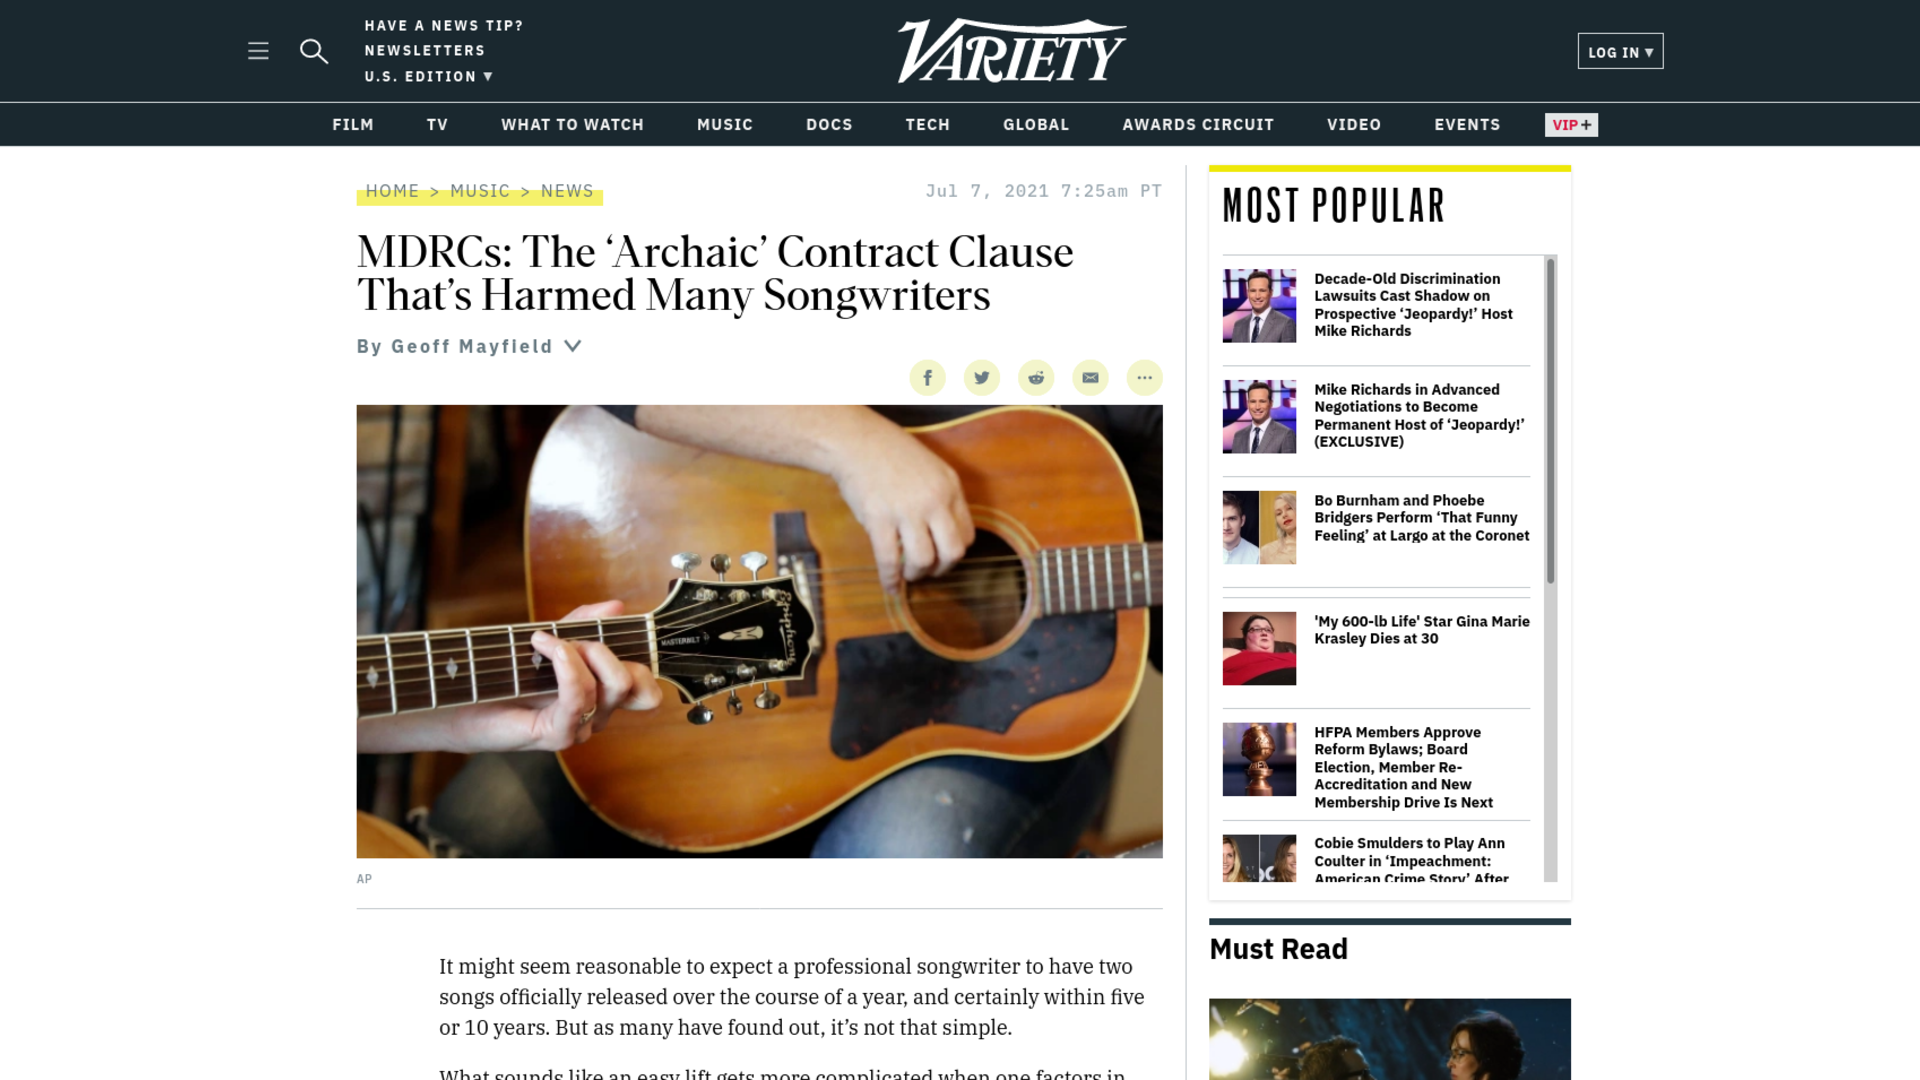 Fairness Rocks News MDRCs: The 'Archaic' Contract Clause That's Harmed Many Songwriters